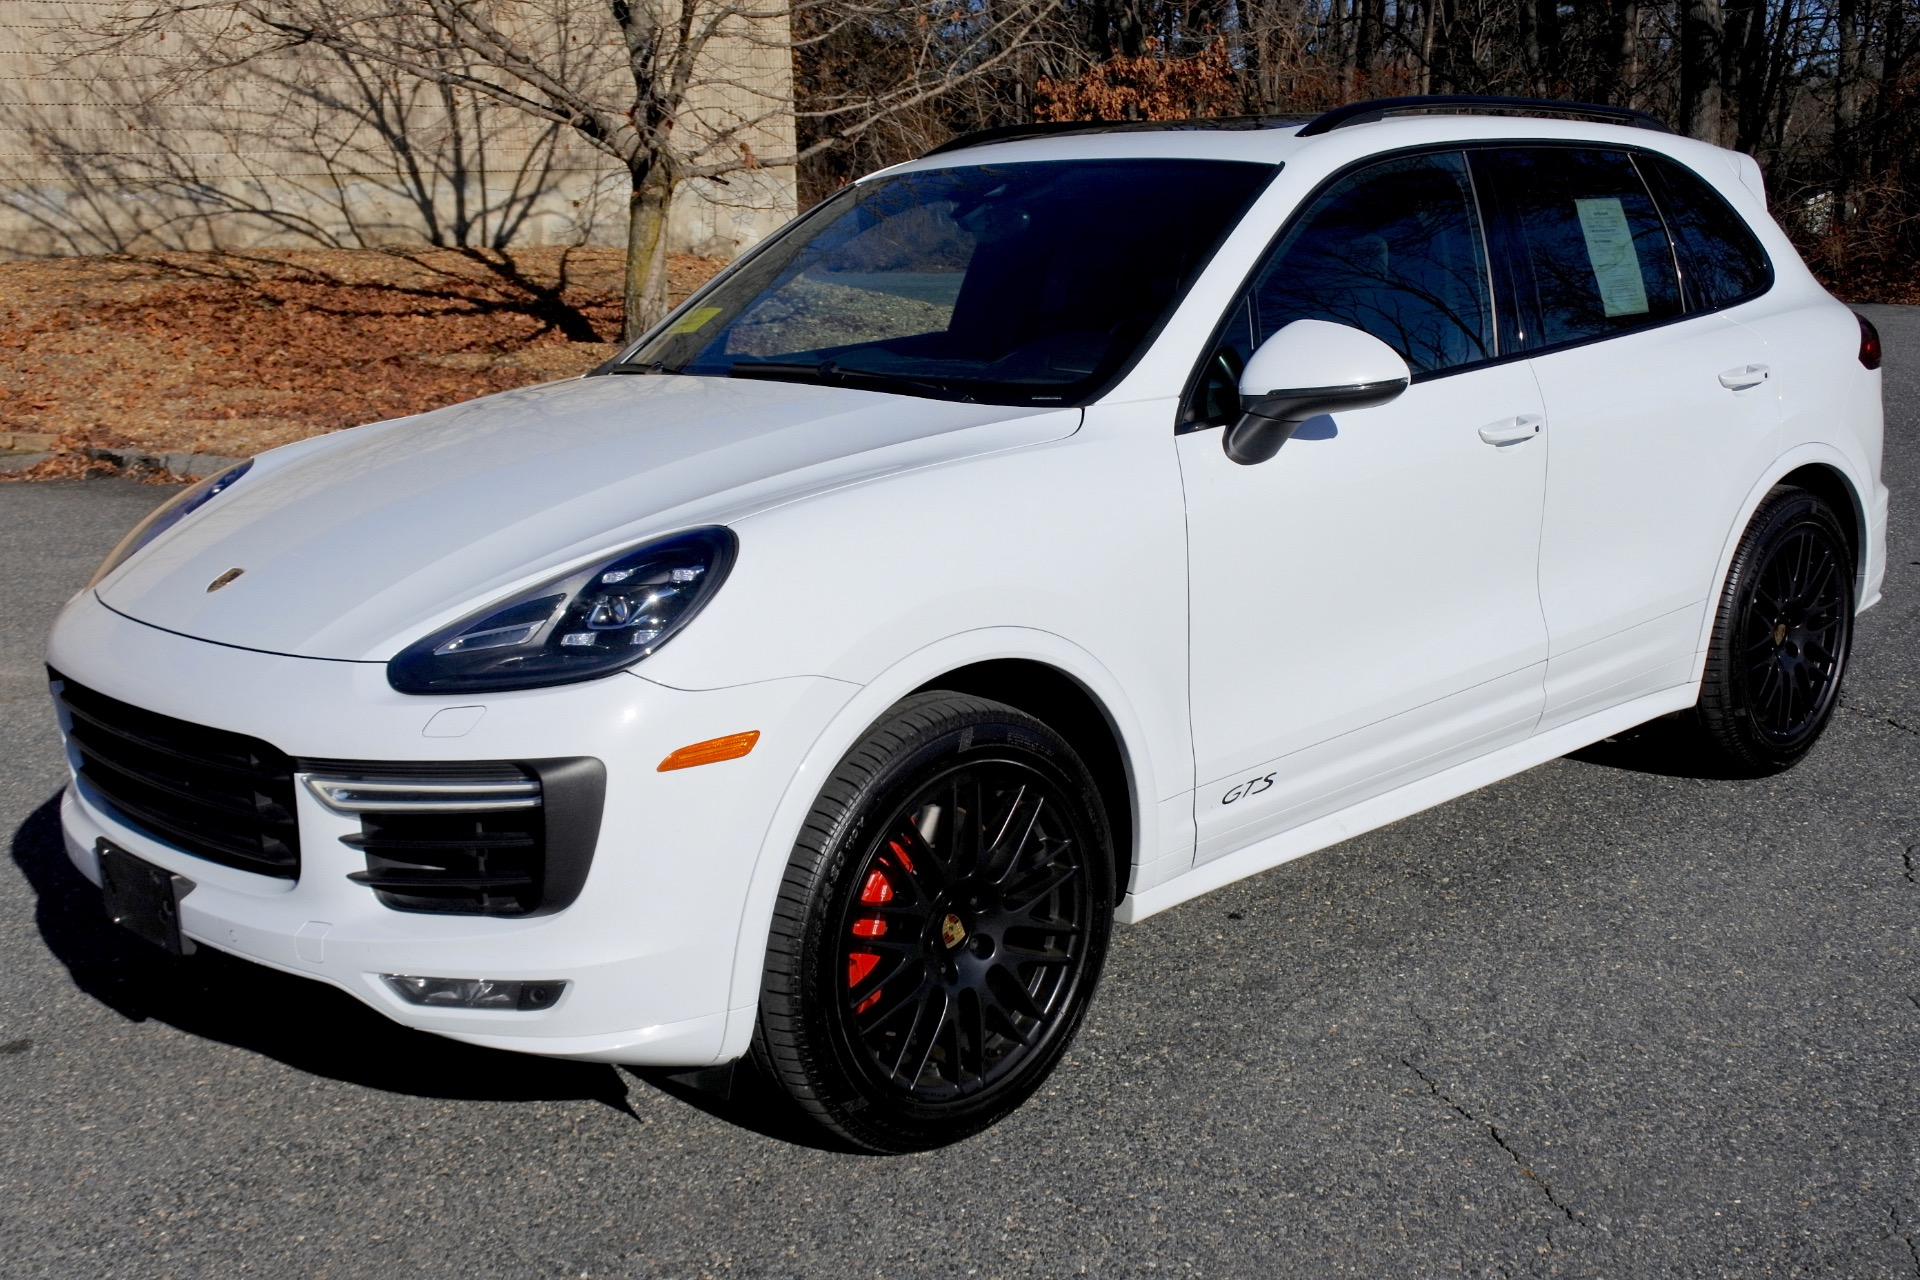 Used 2016 Porsche Cayenne Gts For Sale 48 800 Metro West Motorcars Llc Stock A70818